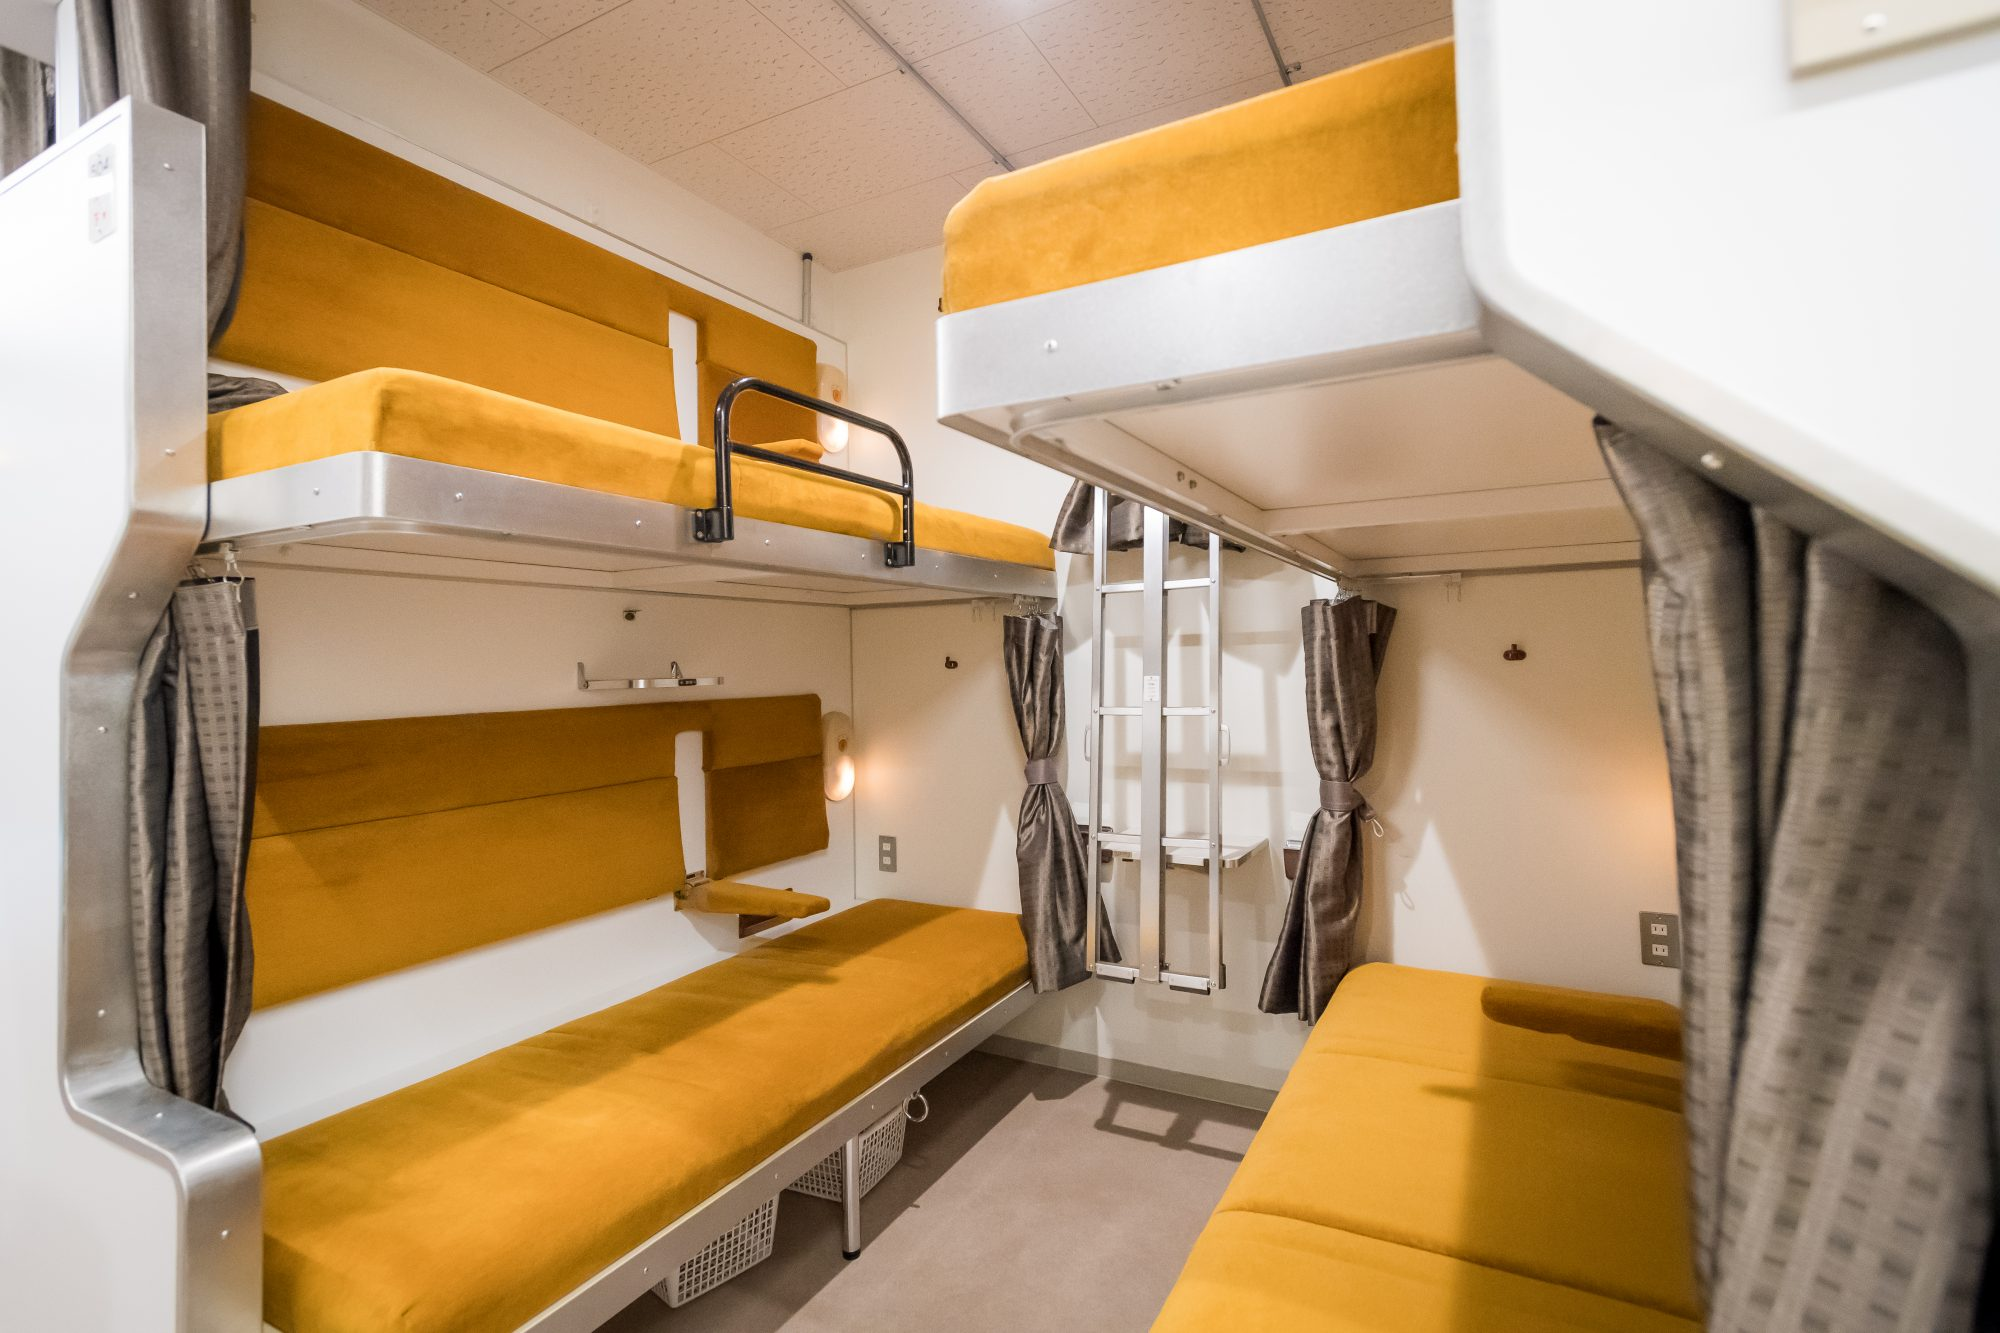 We're in Love With This Sleeper Train-themed Hostel in Tokyo